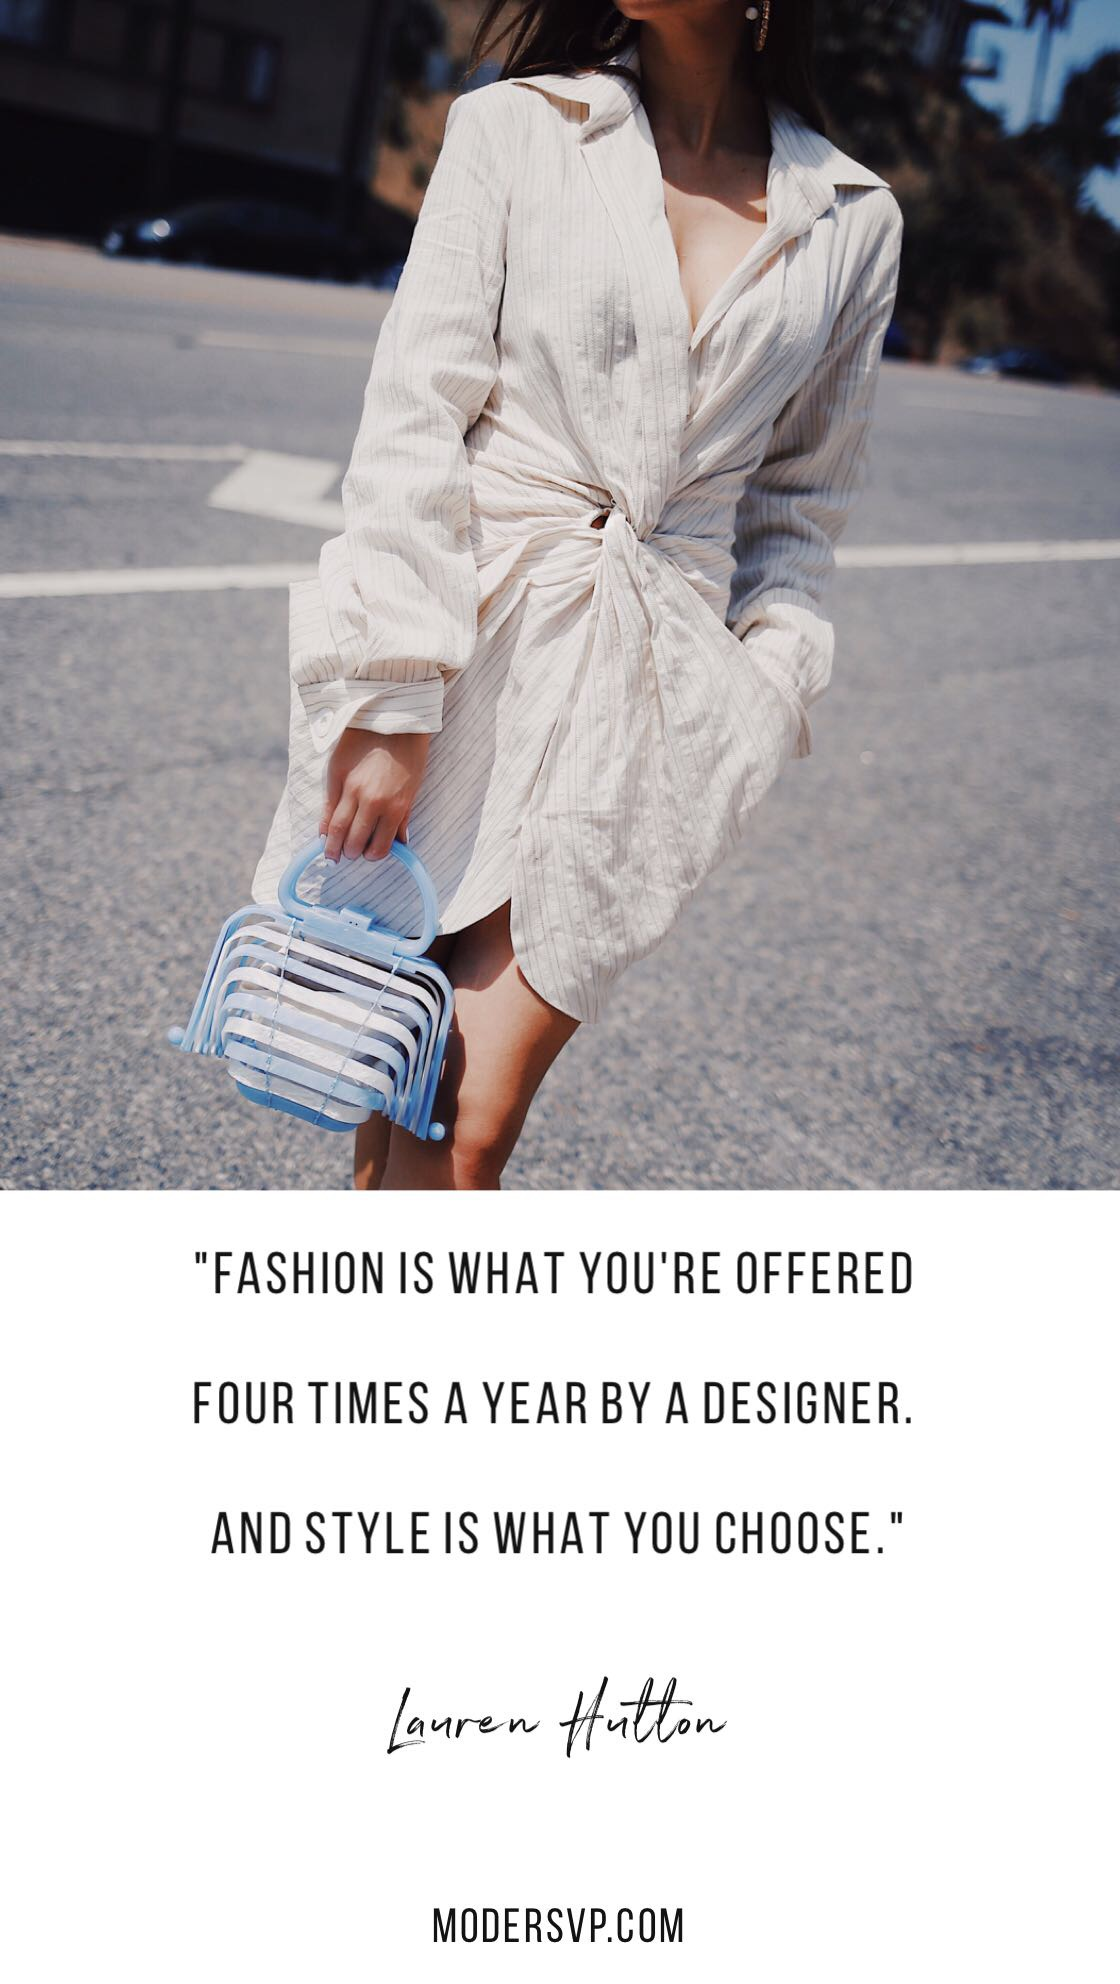 "Best Style quotes - Inspirational Fashion Quotes - ""FASHION IS WHAT YOU'RE OFFERED FOUR TIMES A YEAR BY A DESIGNER.And style is what you choose."" Lauren Hutton - Read more style quotes from Anna Wintour, Diane Von Furstenberg, Coco Chanel and other fashion designers and style icons on Houseofcomil.com"